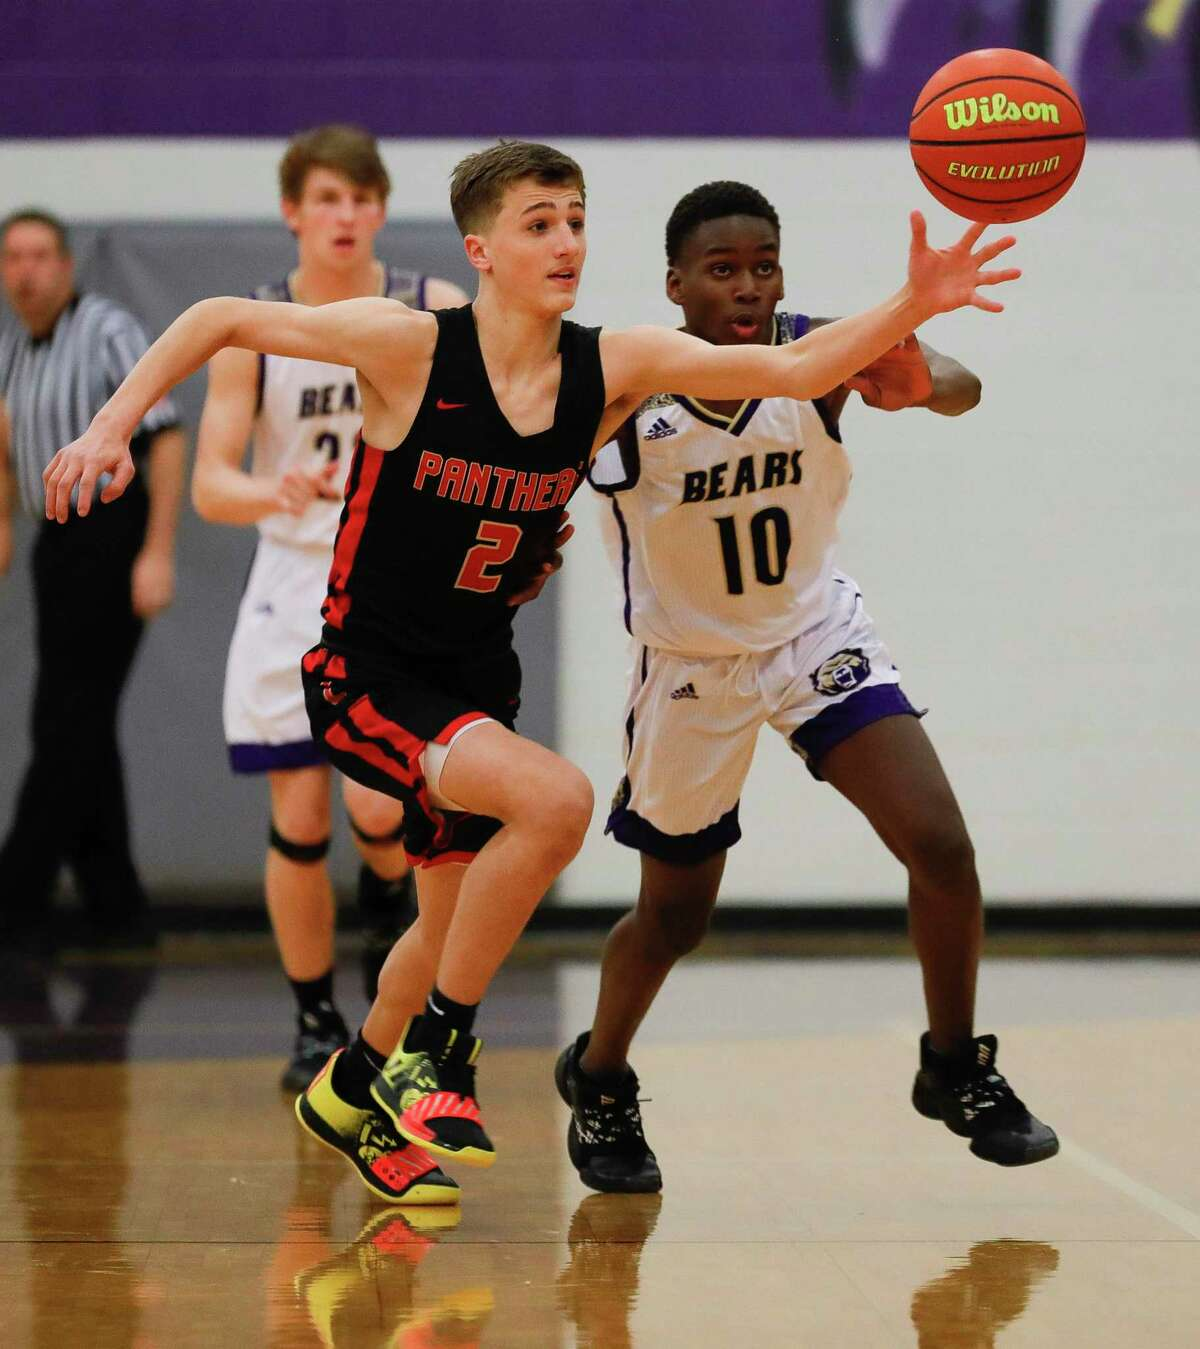 Montgomery point guard Hezzy Miregi (10) goes after a loose ball against Caney Creek shooting guard Kaleb Turner (2) during the first quarter of a District 20-5A high school basketball game at Montgomery High School, Tuesday, Jan. 7, 2020, in Montgomery.